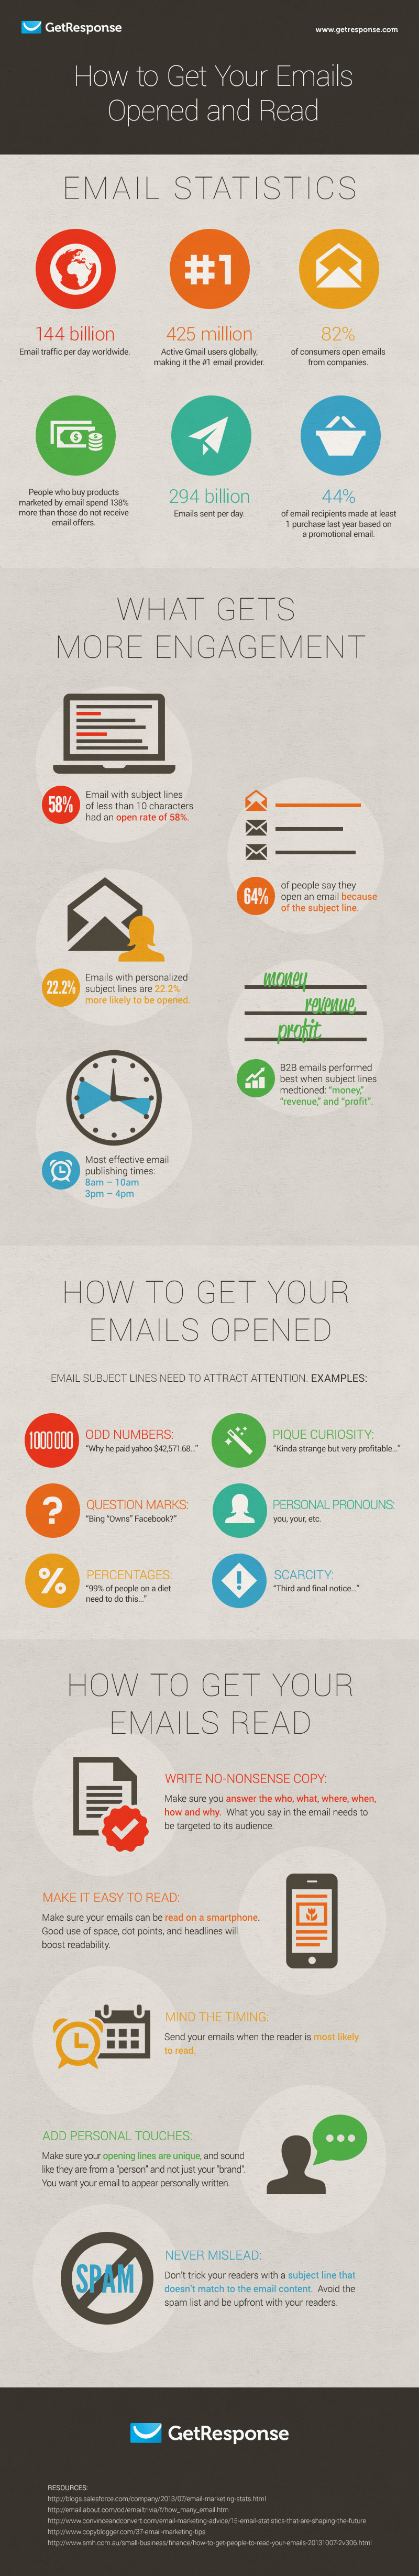 How to Get Your Emails Opened and Read – Infographic